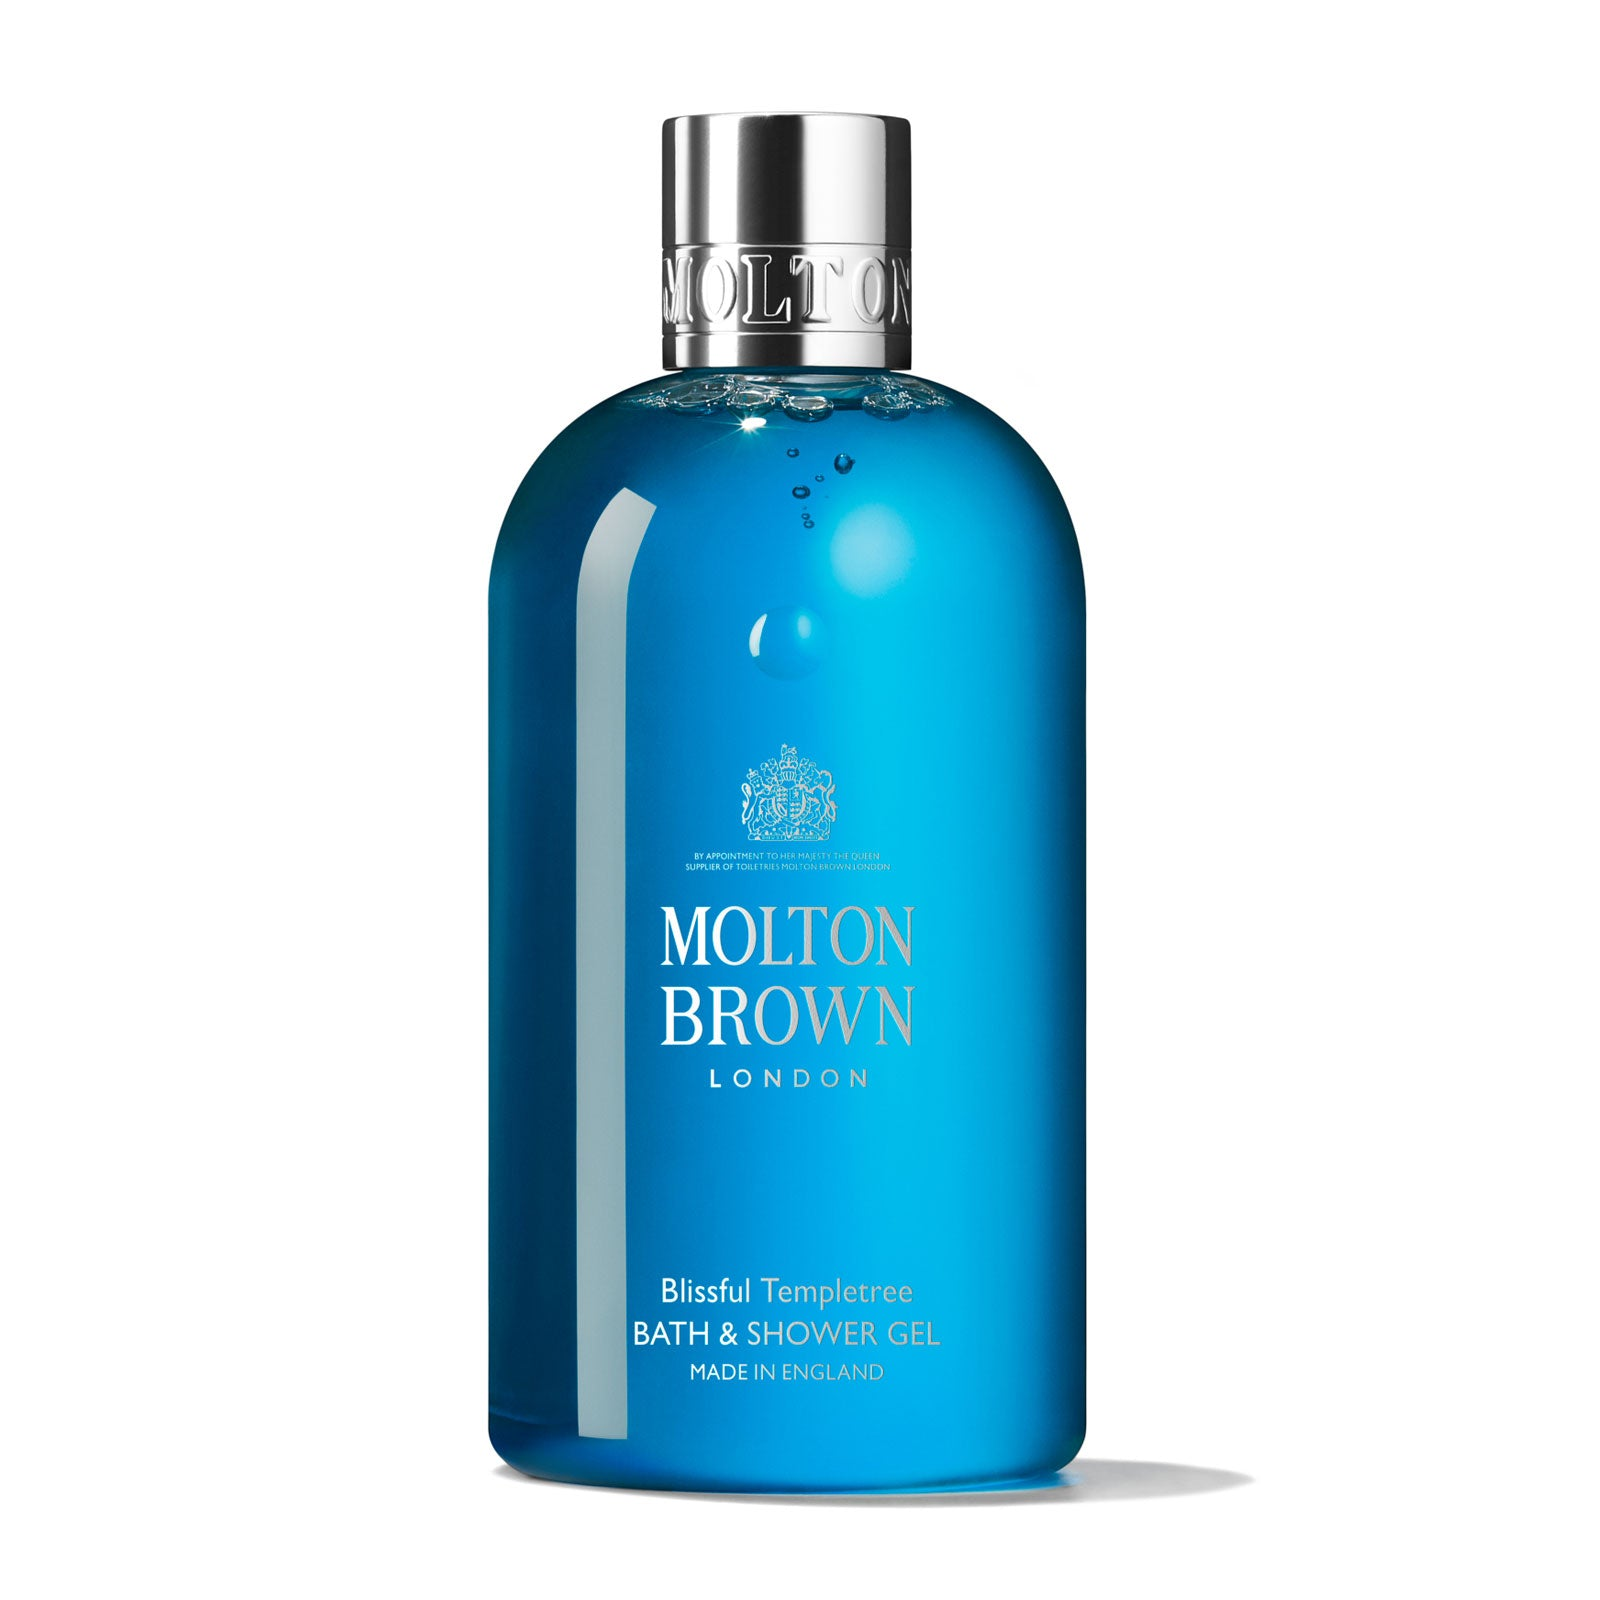 Molton Brown Blissful Templetree Bath & Shower Gel 300ml